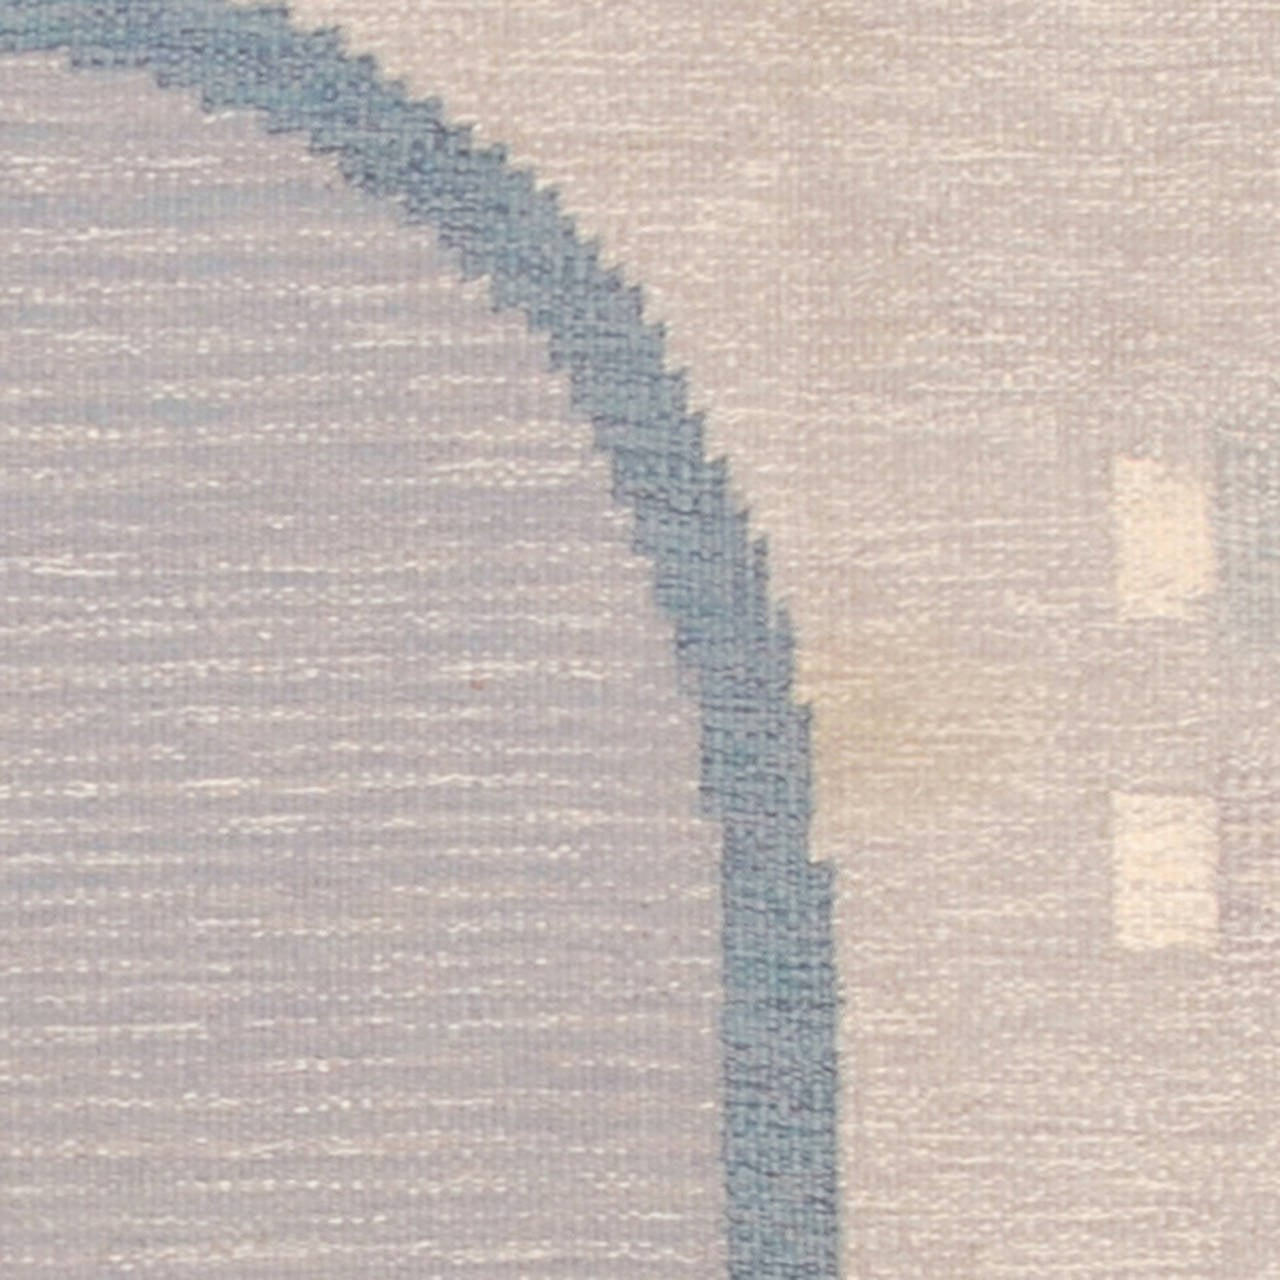 20th Century Swedish Flat-Weave Carpet by Ingegerd Silow In Excellent Condition For Sale In New York, NY